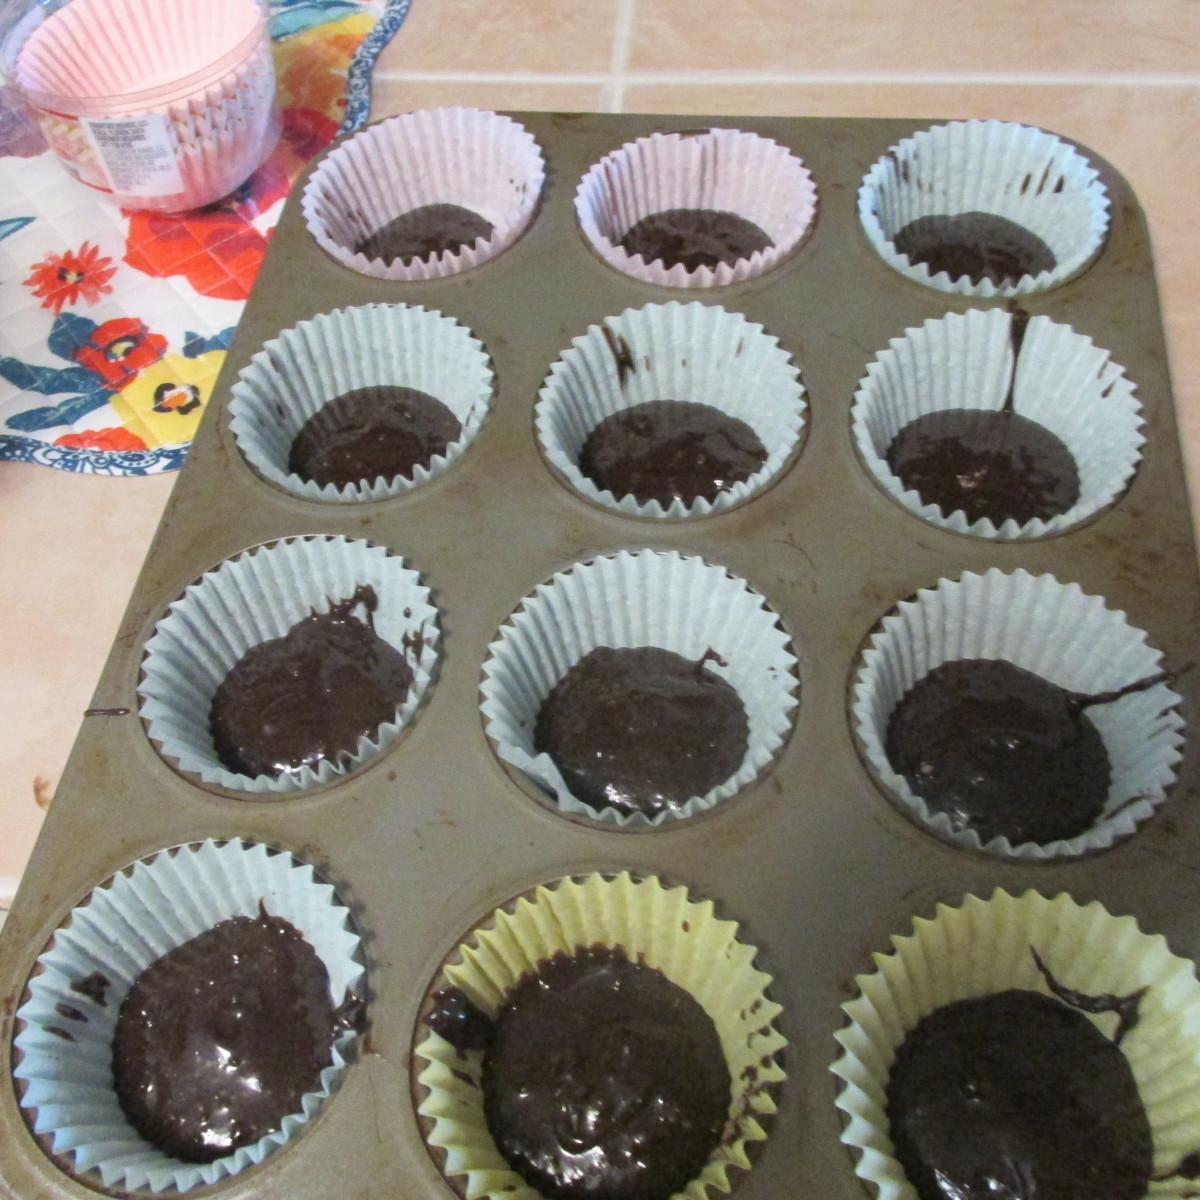 First layer: brownie batter